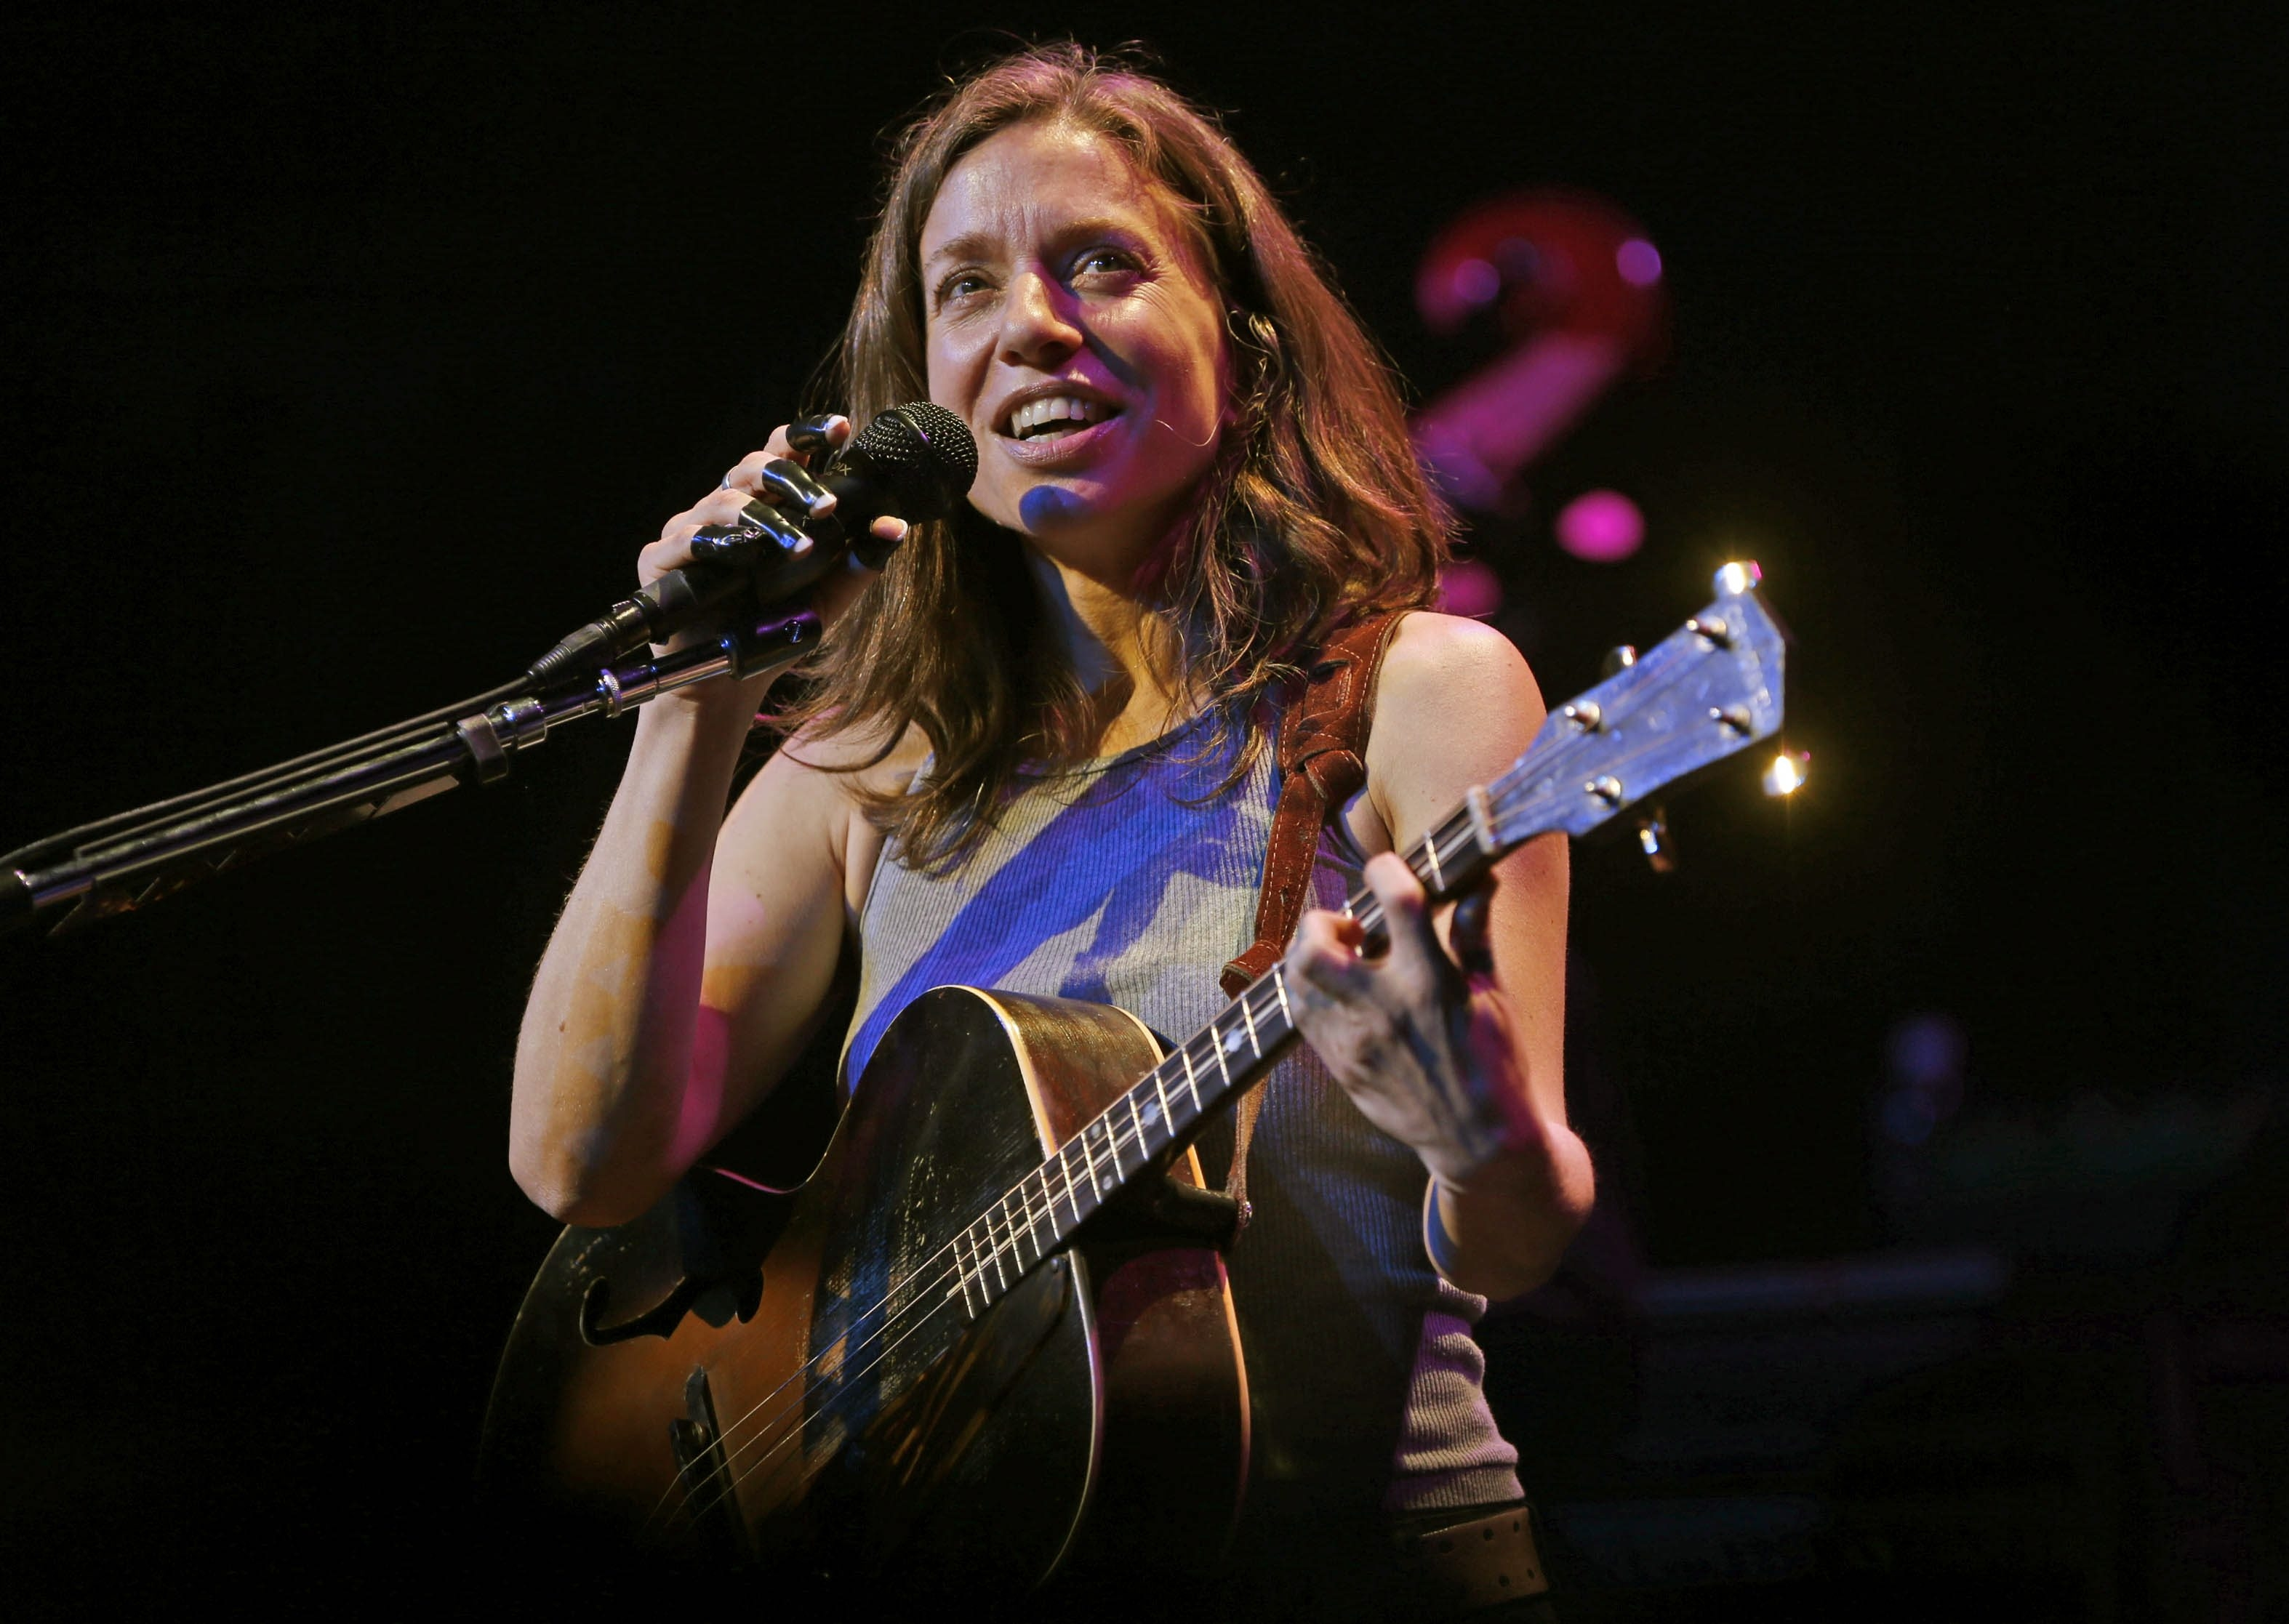 """The News' Jeff Miers writes, """"Even if Friday's show felt like a giddy hang with an old friend, it was in fact an opportunity for us all to become reacquainted with the ceaselessly inventive songwriter and musician that Ani DiFranco is."""""""